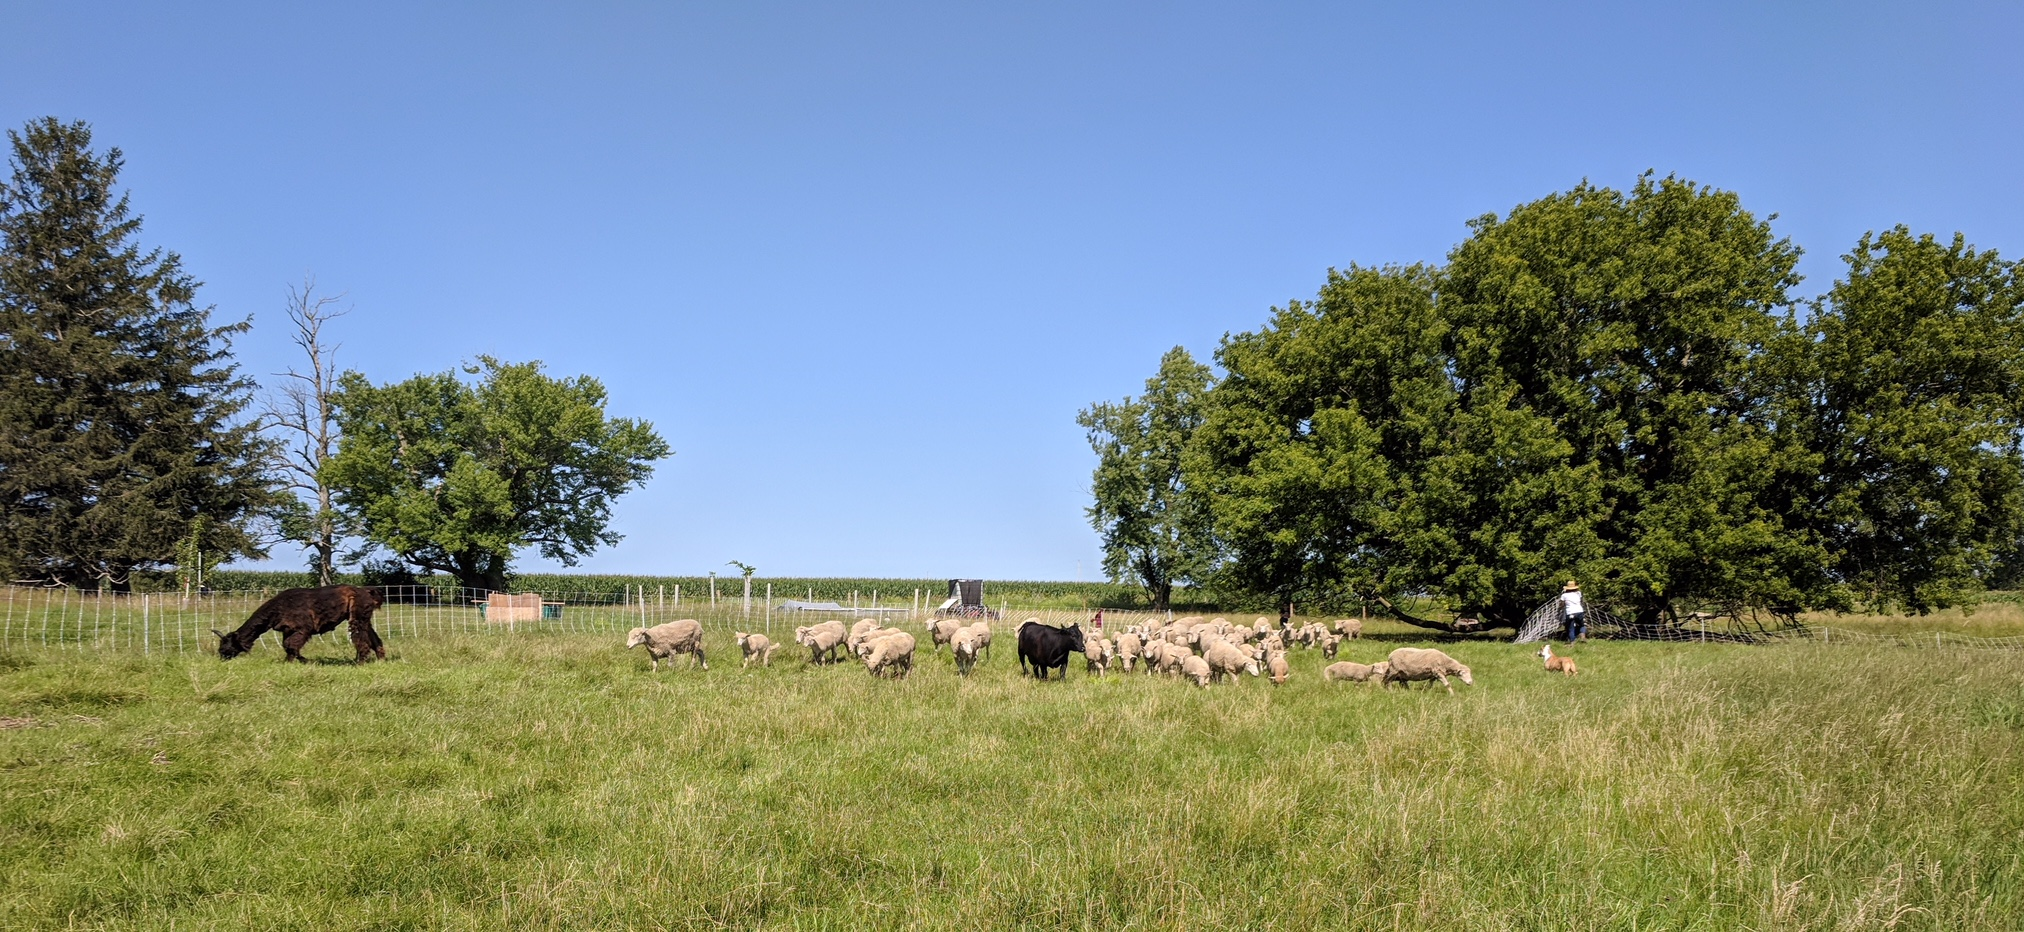 Jóia Food Farm - A regenerative organic farm   bringing humanely-raised meats and eggs to your table.